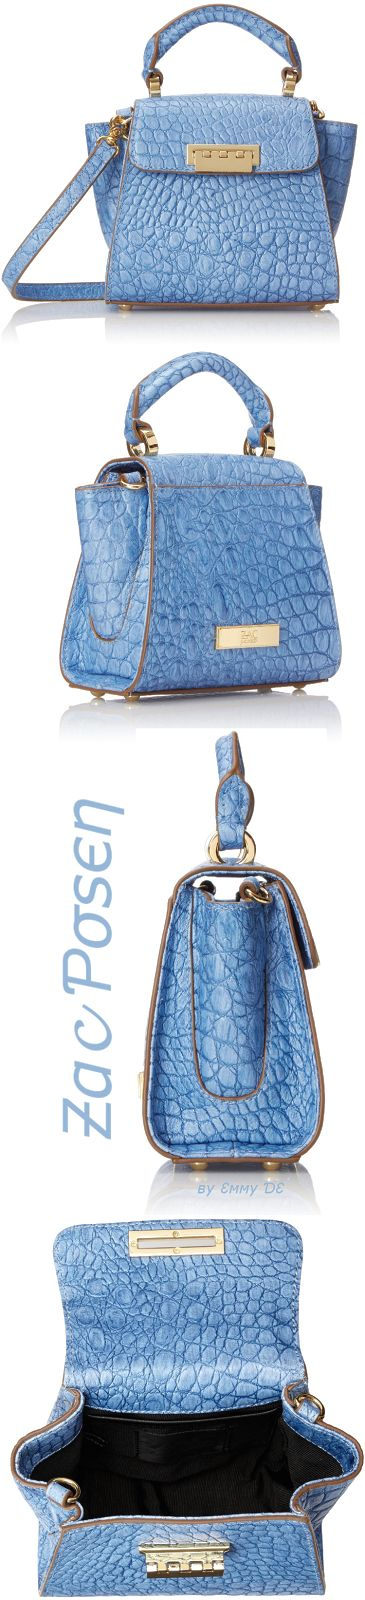 Brilliant Luxury by Emmy DE * Zac Posen 'Eartha' Mini Top Handle Bag 2015